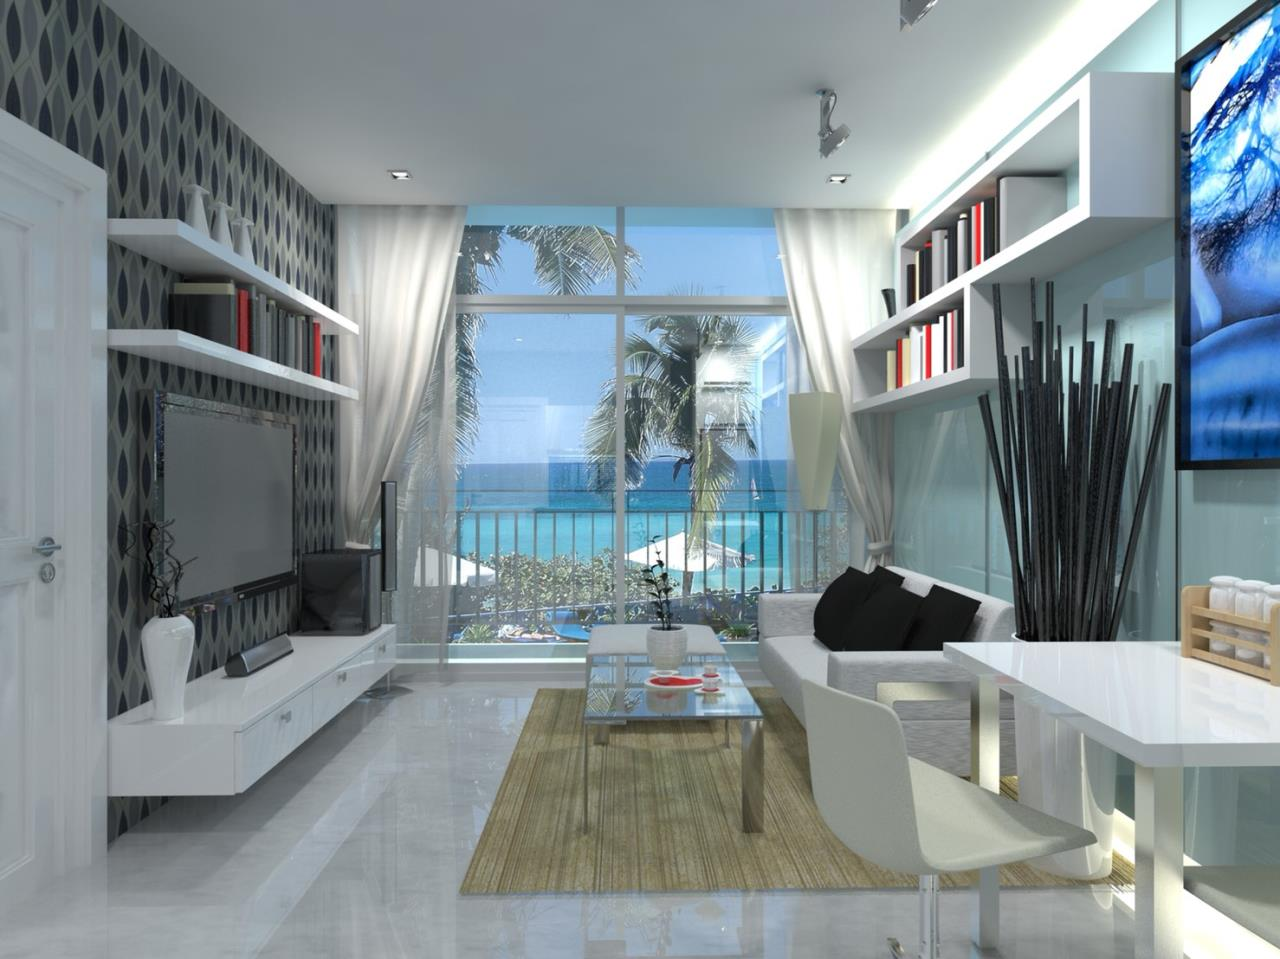 Signature Realty ( Thailand ) Co Ltd Agency's Furnished 1bedroom 44 sq.m condo with jacuzzi floor 21-31 at The Grand Jomtein Beach Pattaya 7